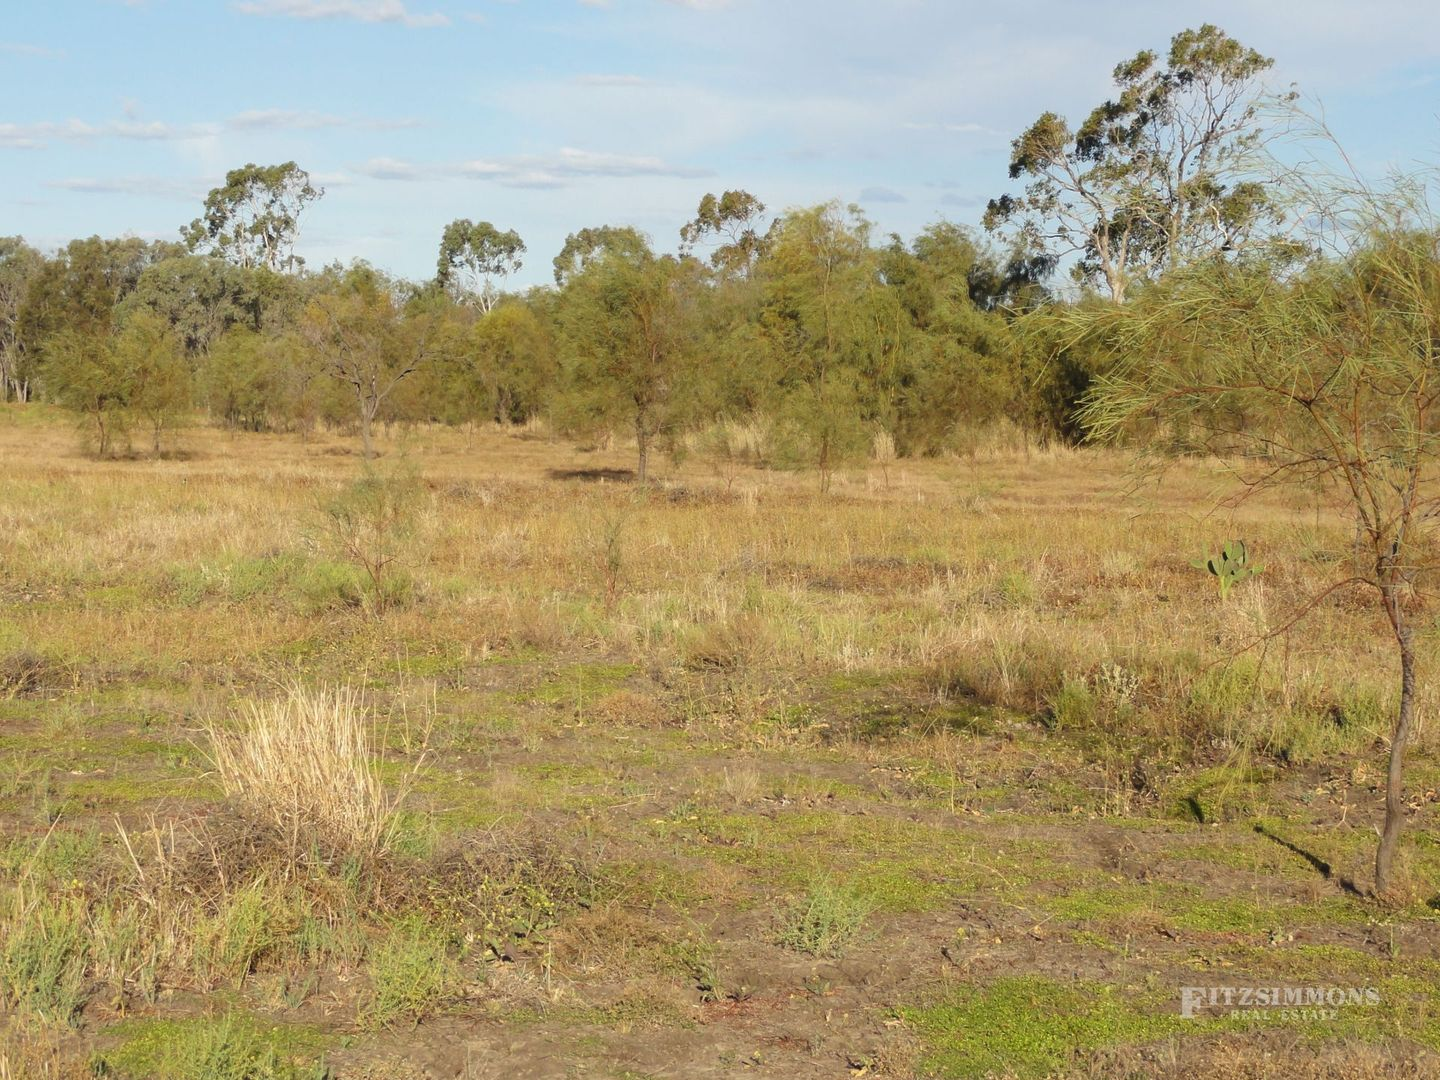 Lot 81 - 82 Armstrong Street, Dalby QLD 4405, Image 1